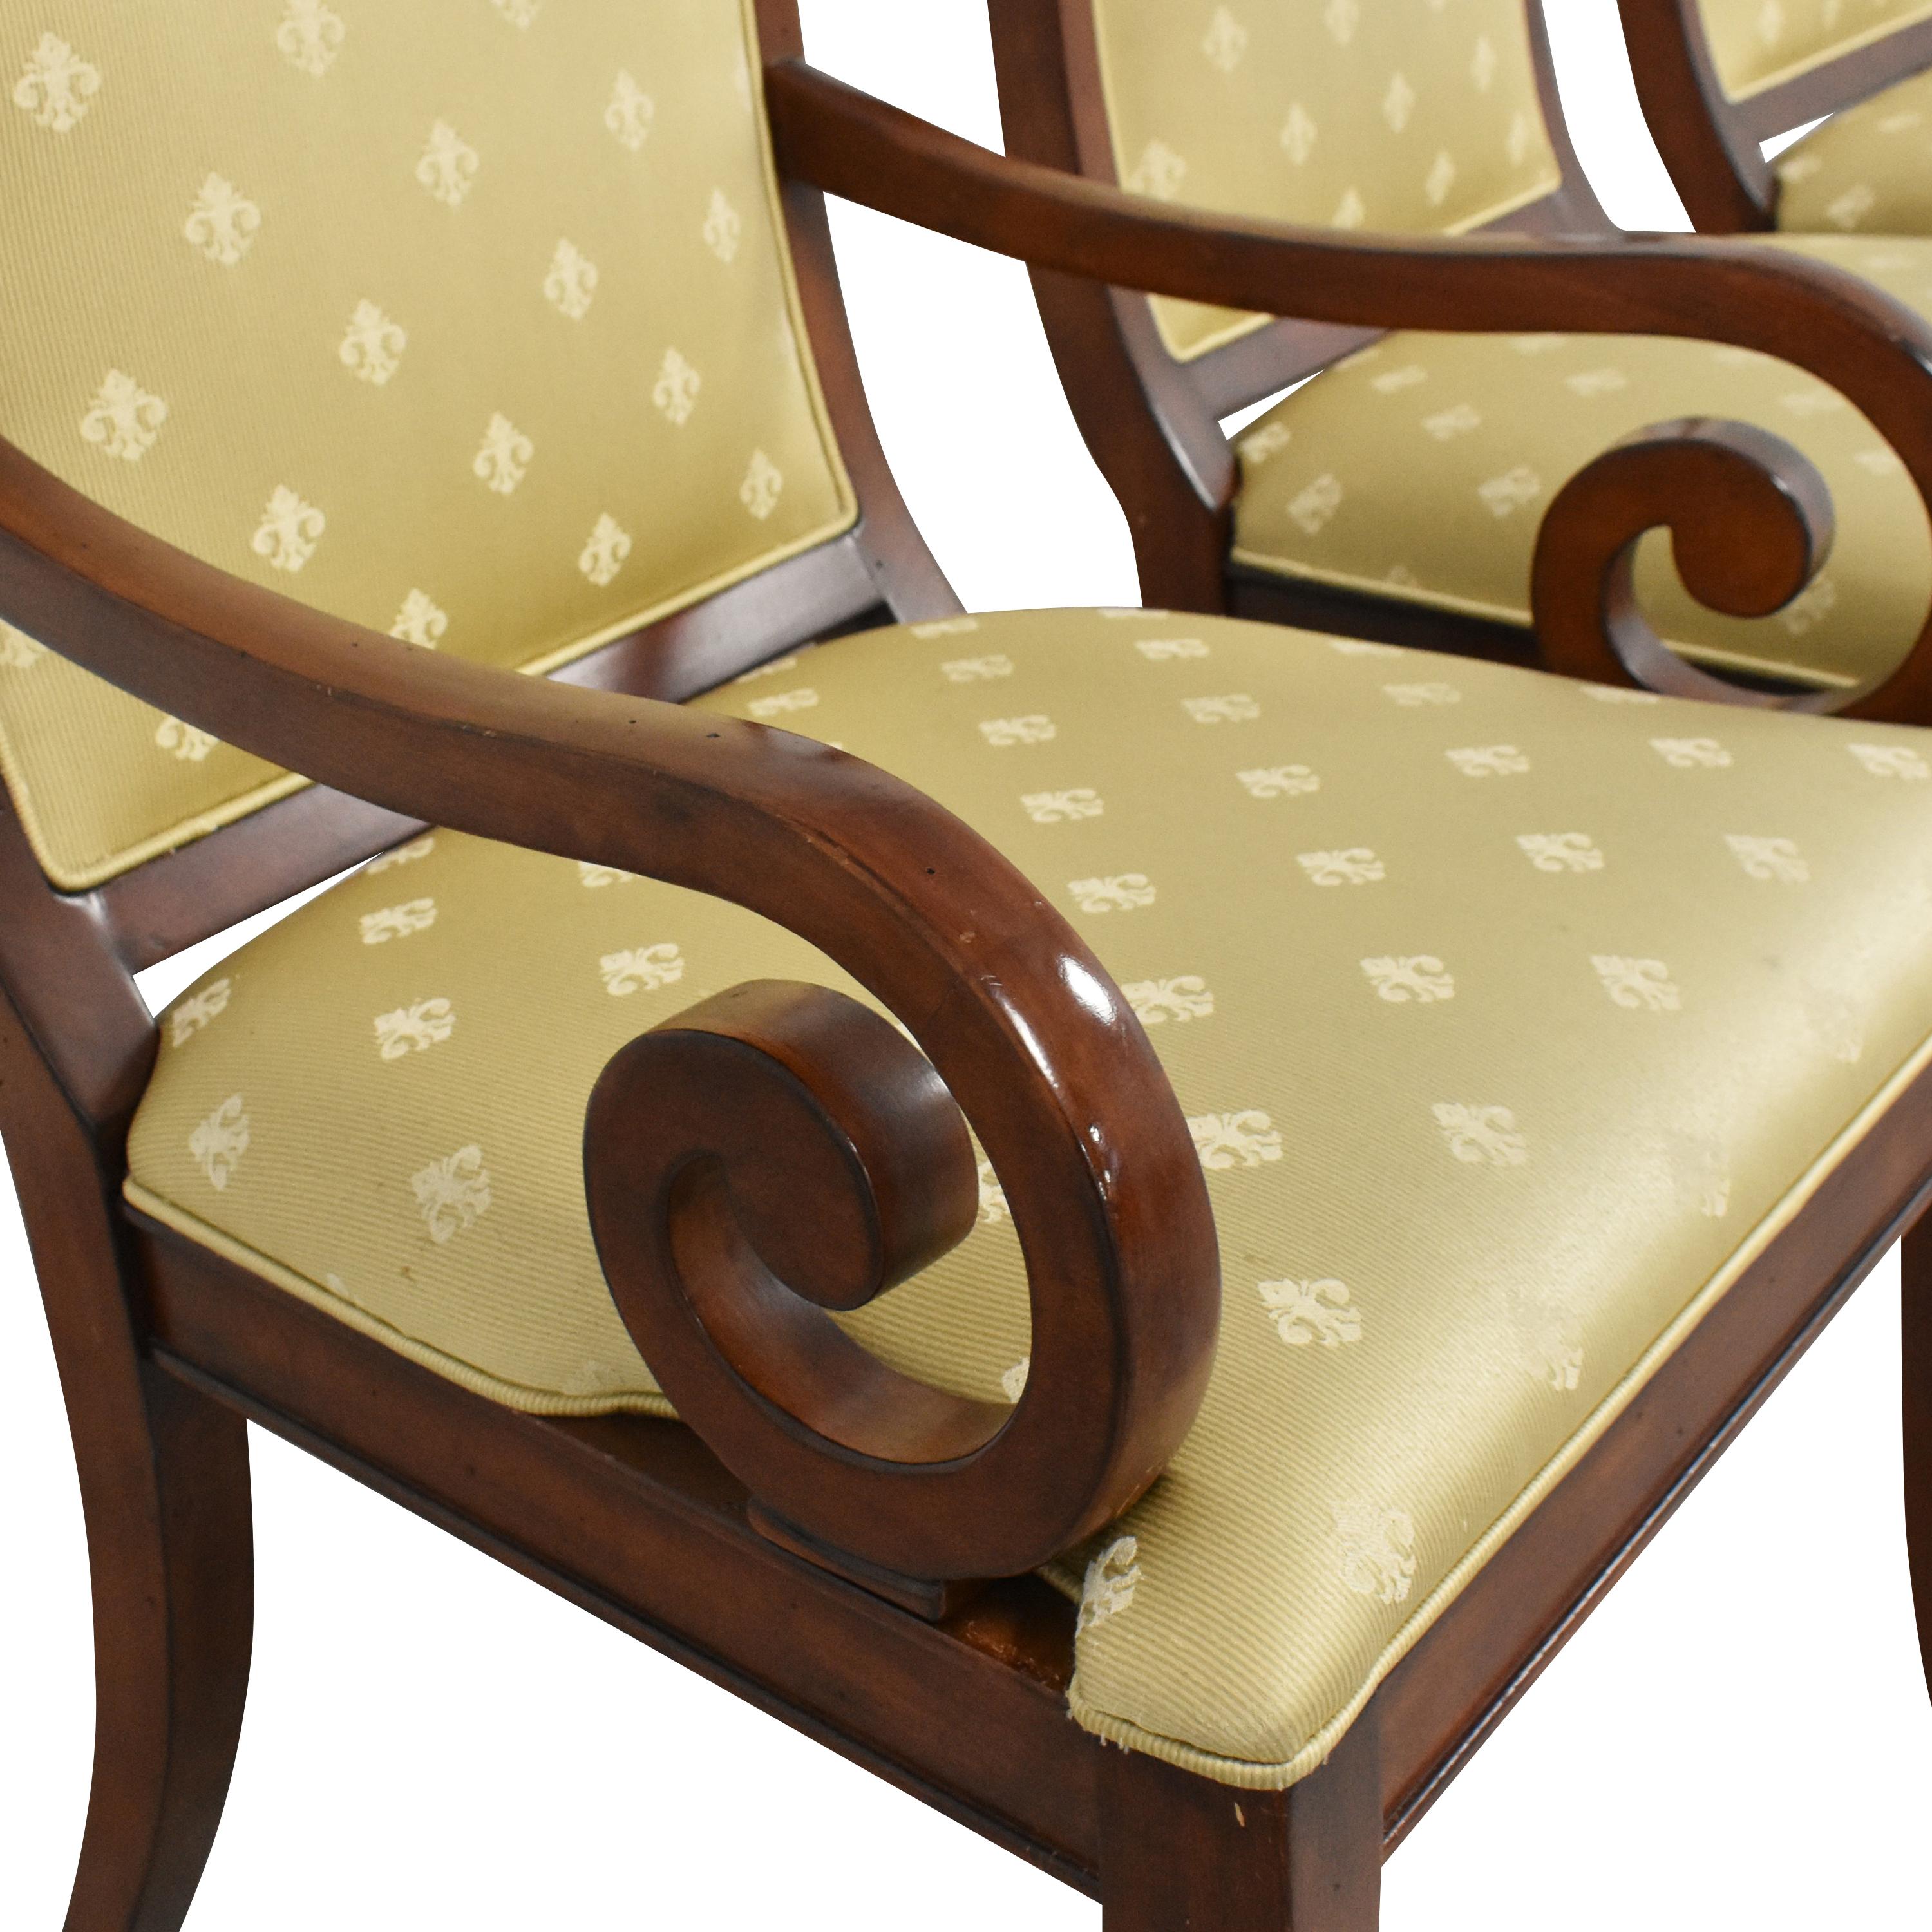 Drexel Heritage Drexel Heritage Upholstered Dining Chairs nj